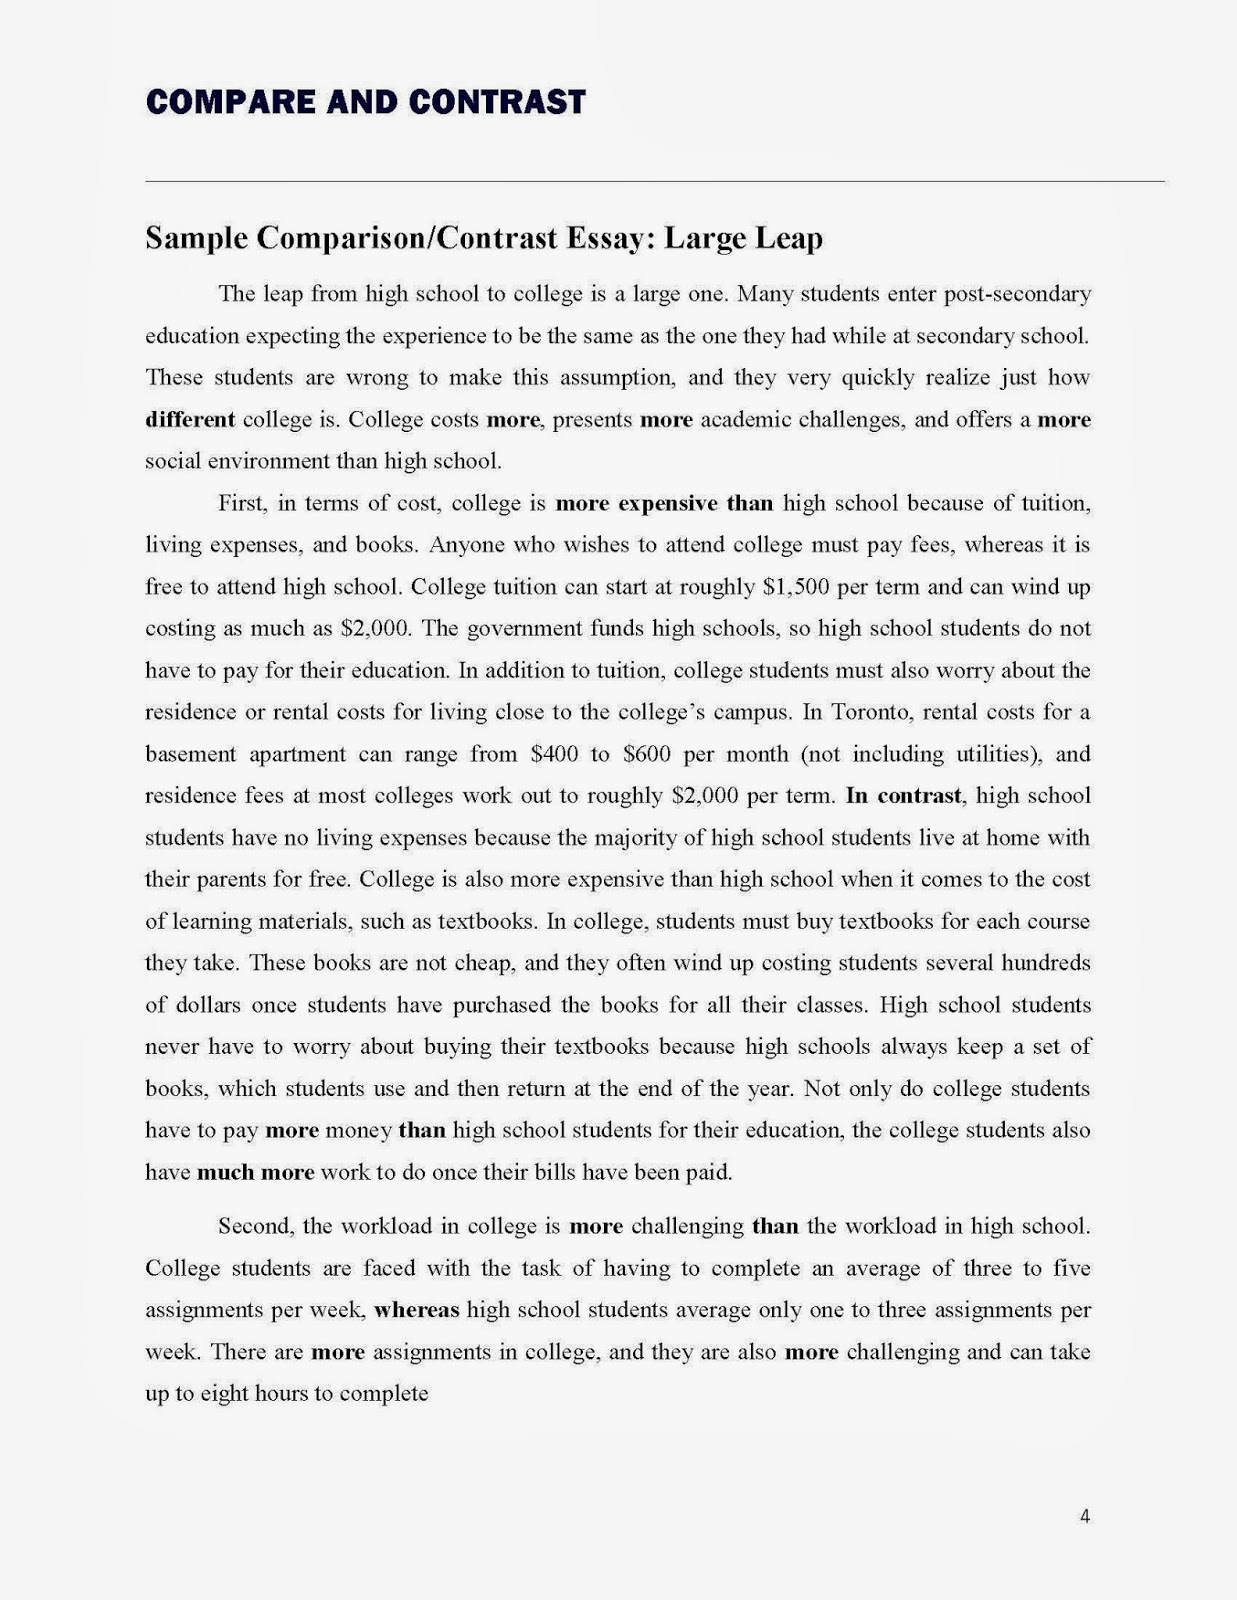 008 Essay Example Conclusion For Compare And Contrast Compare2band2bcontrast2bessay Page 4 Awesome How To Write A Paragraph Examples Full